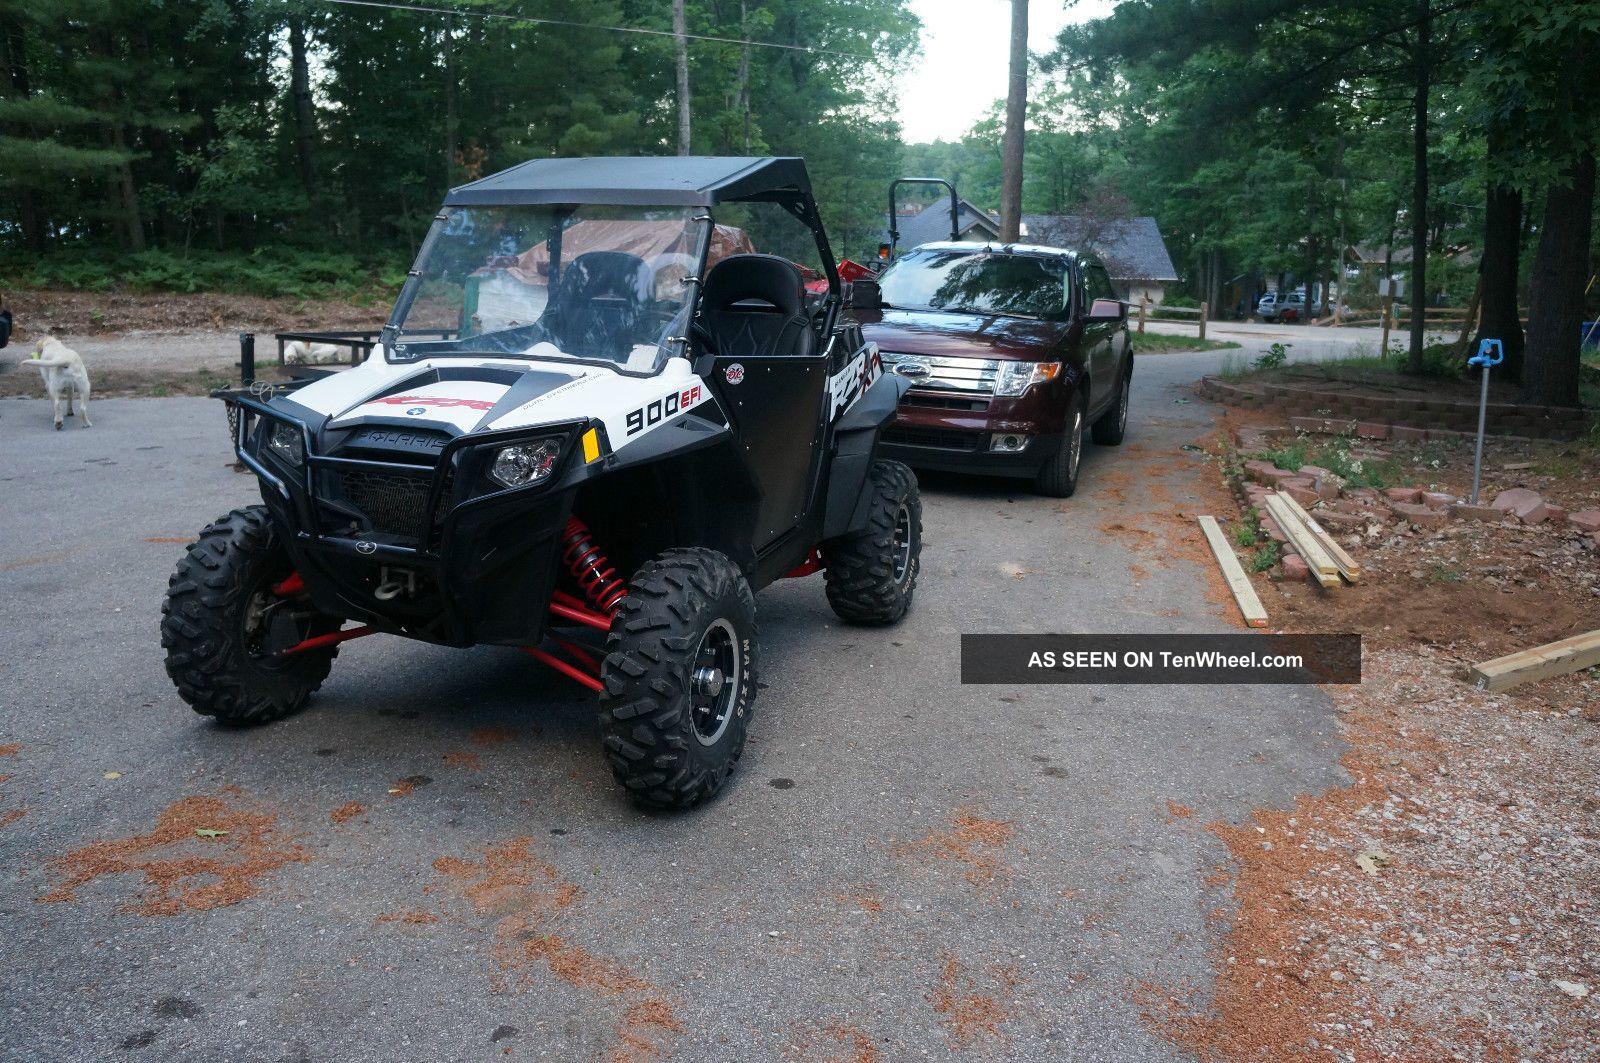 2012 Polaris Rzr 900 Xp White Lightning Polaris photo